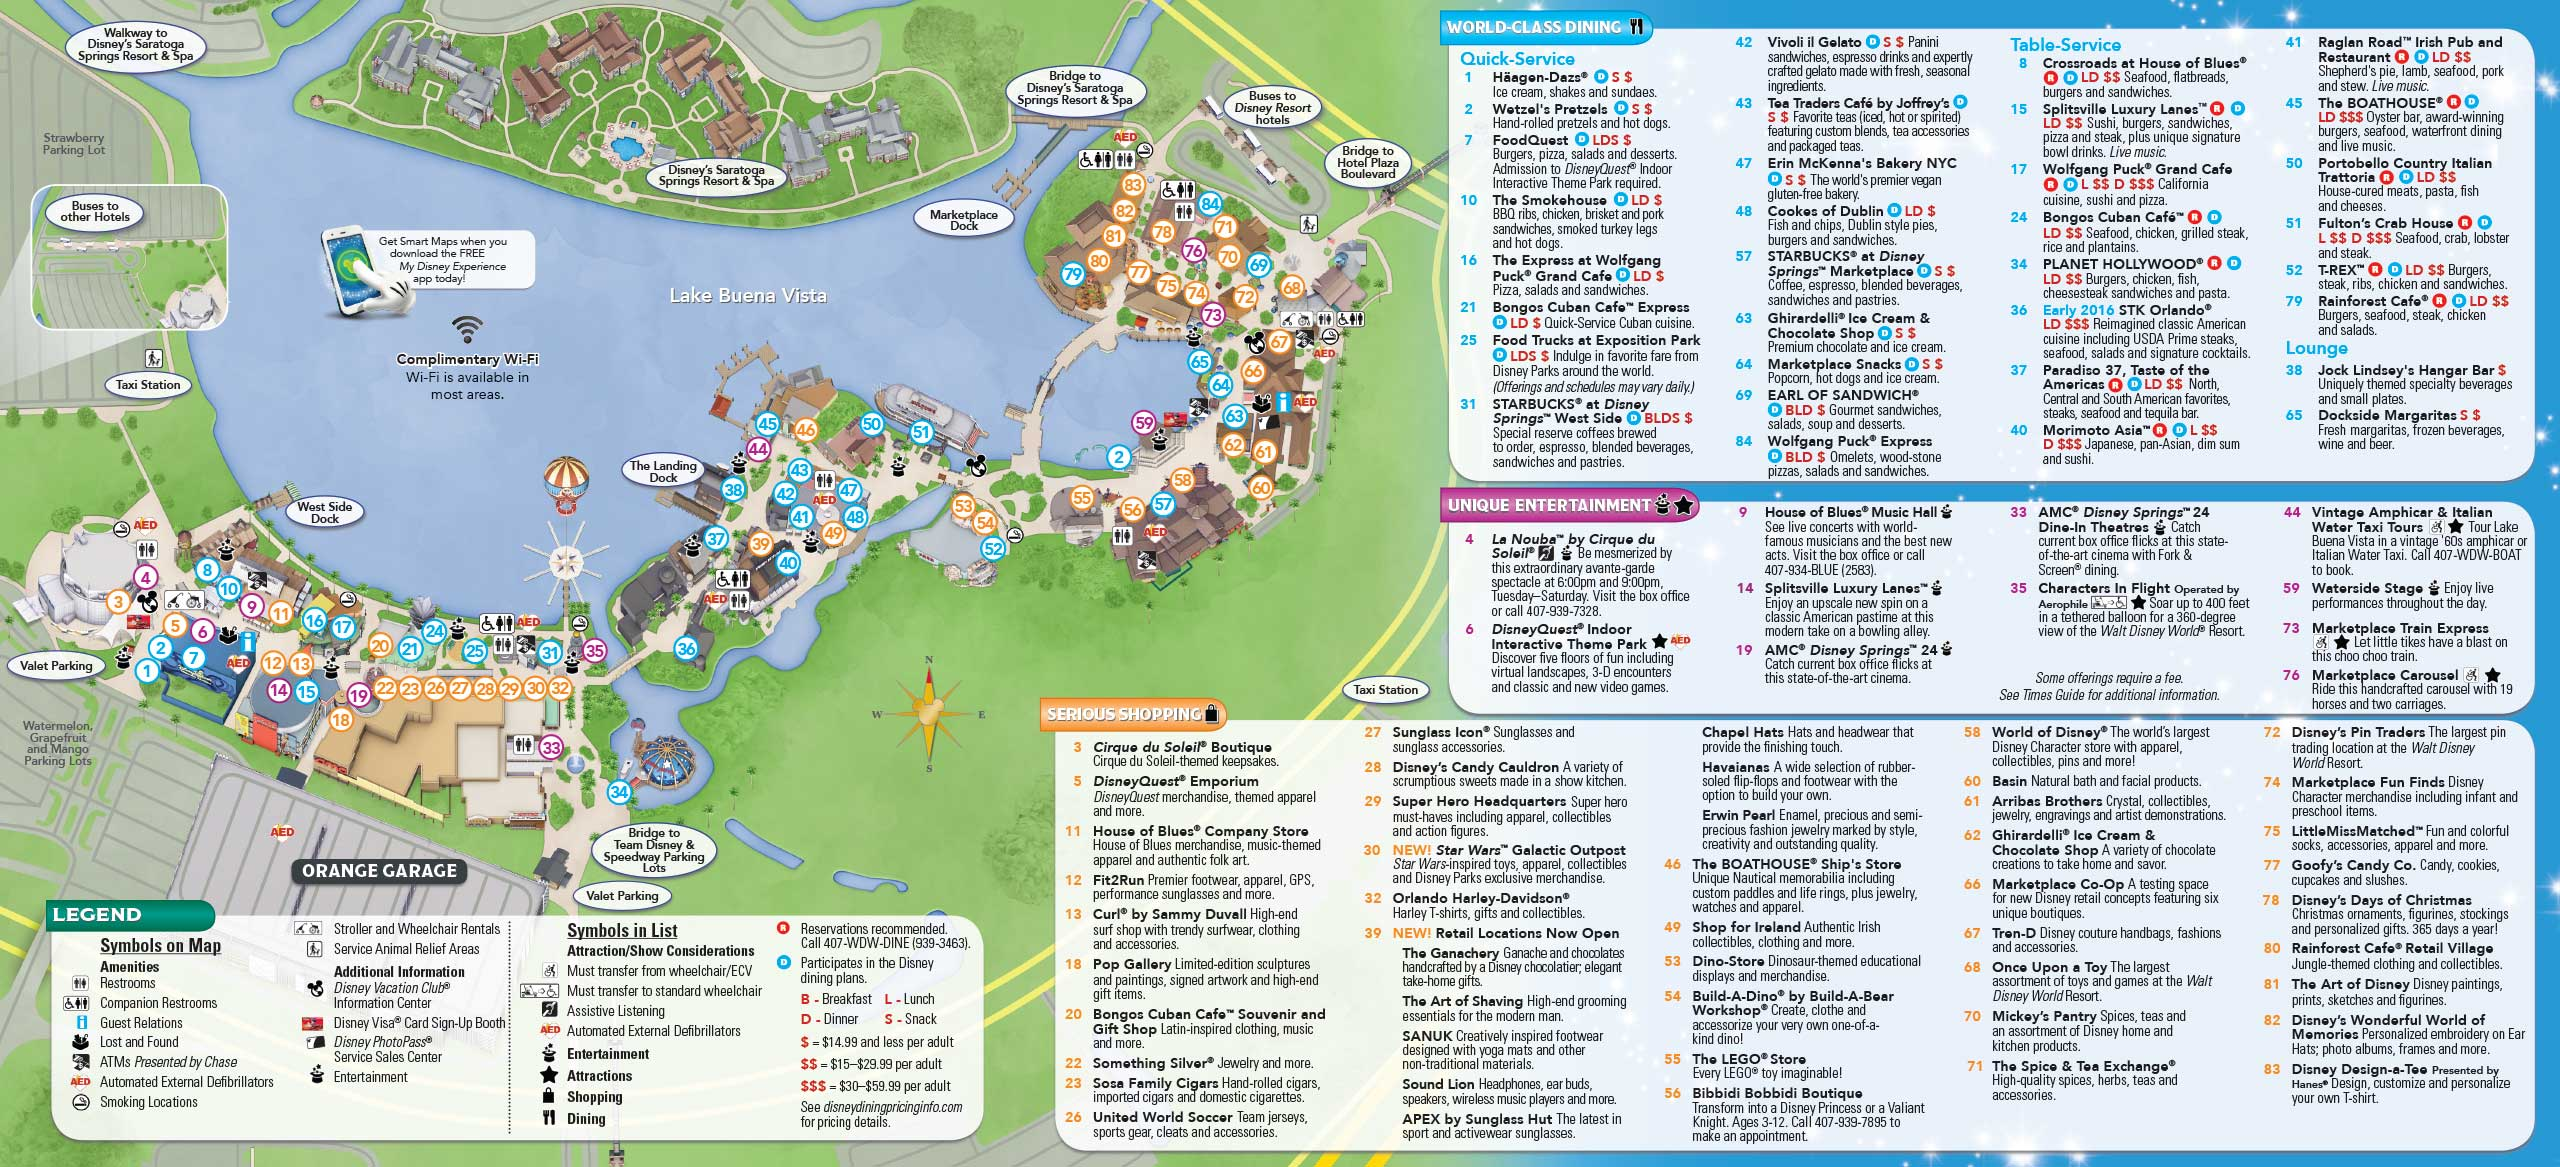 January 2016 walt disney world park maps photo 1 of 12 gumiabroncs Image collections